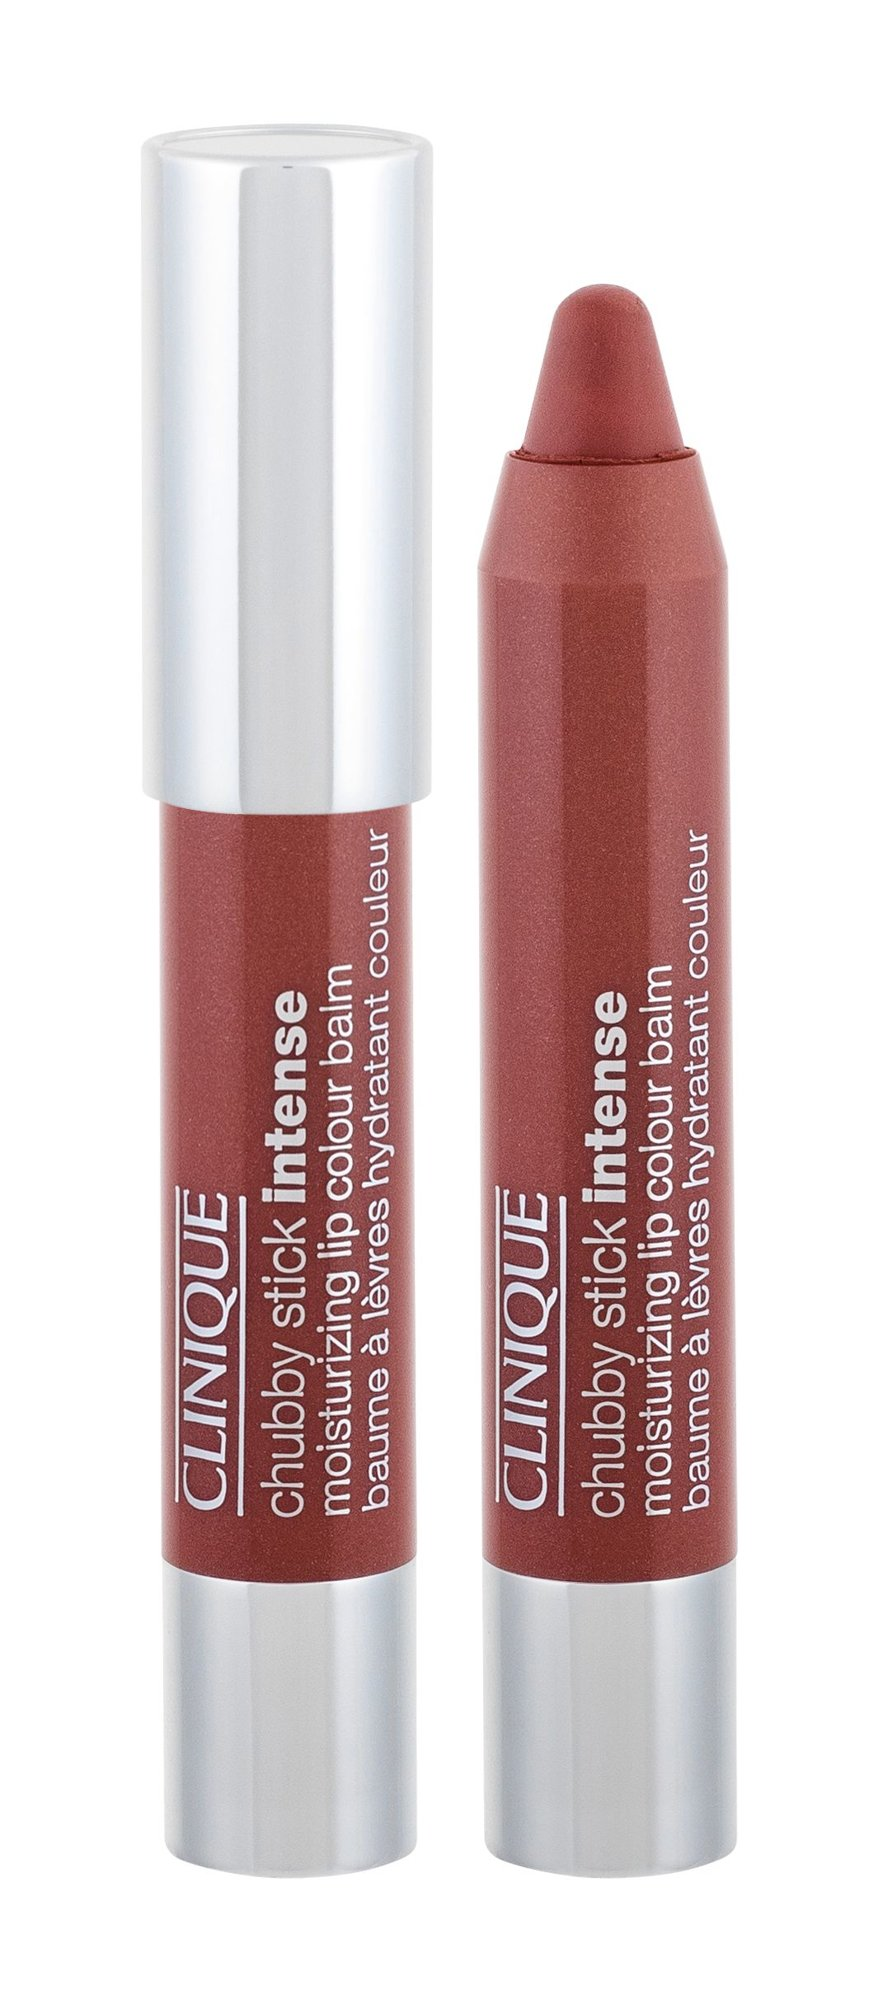 Clinique Chubby Stick Cosmetic 3ml 01 Curviest Caramel Intense